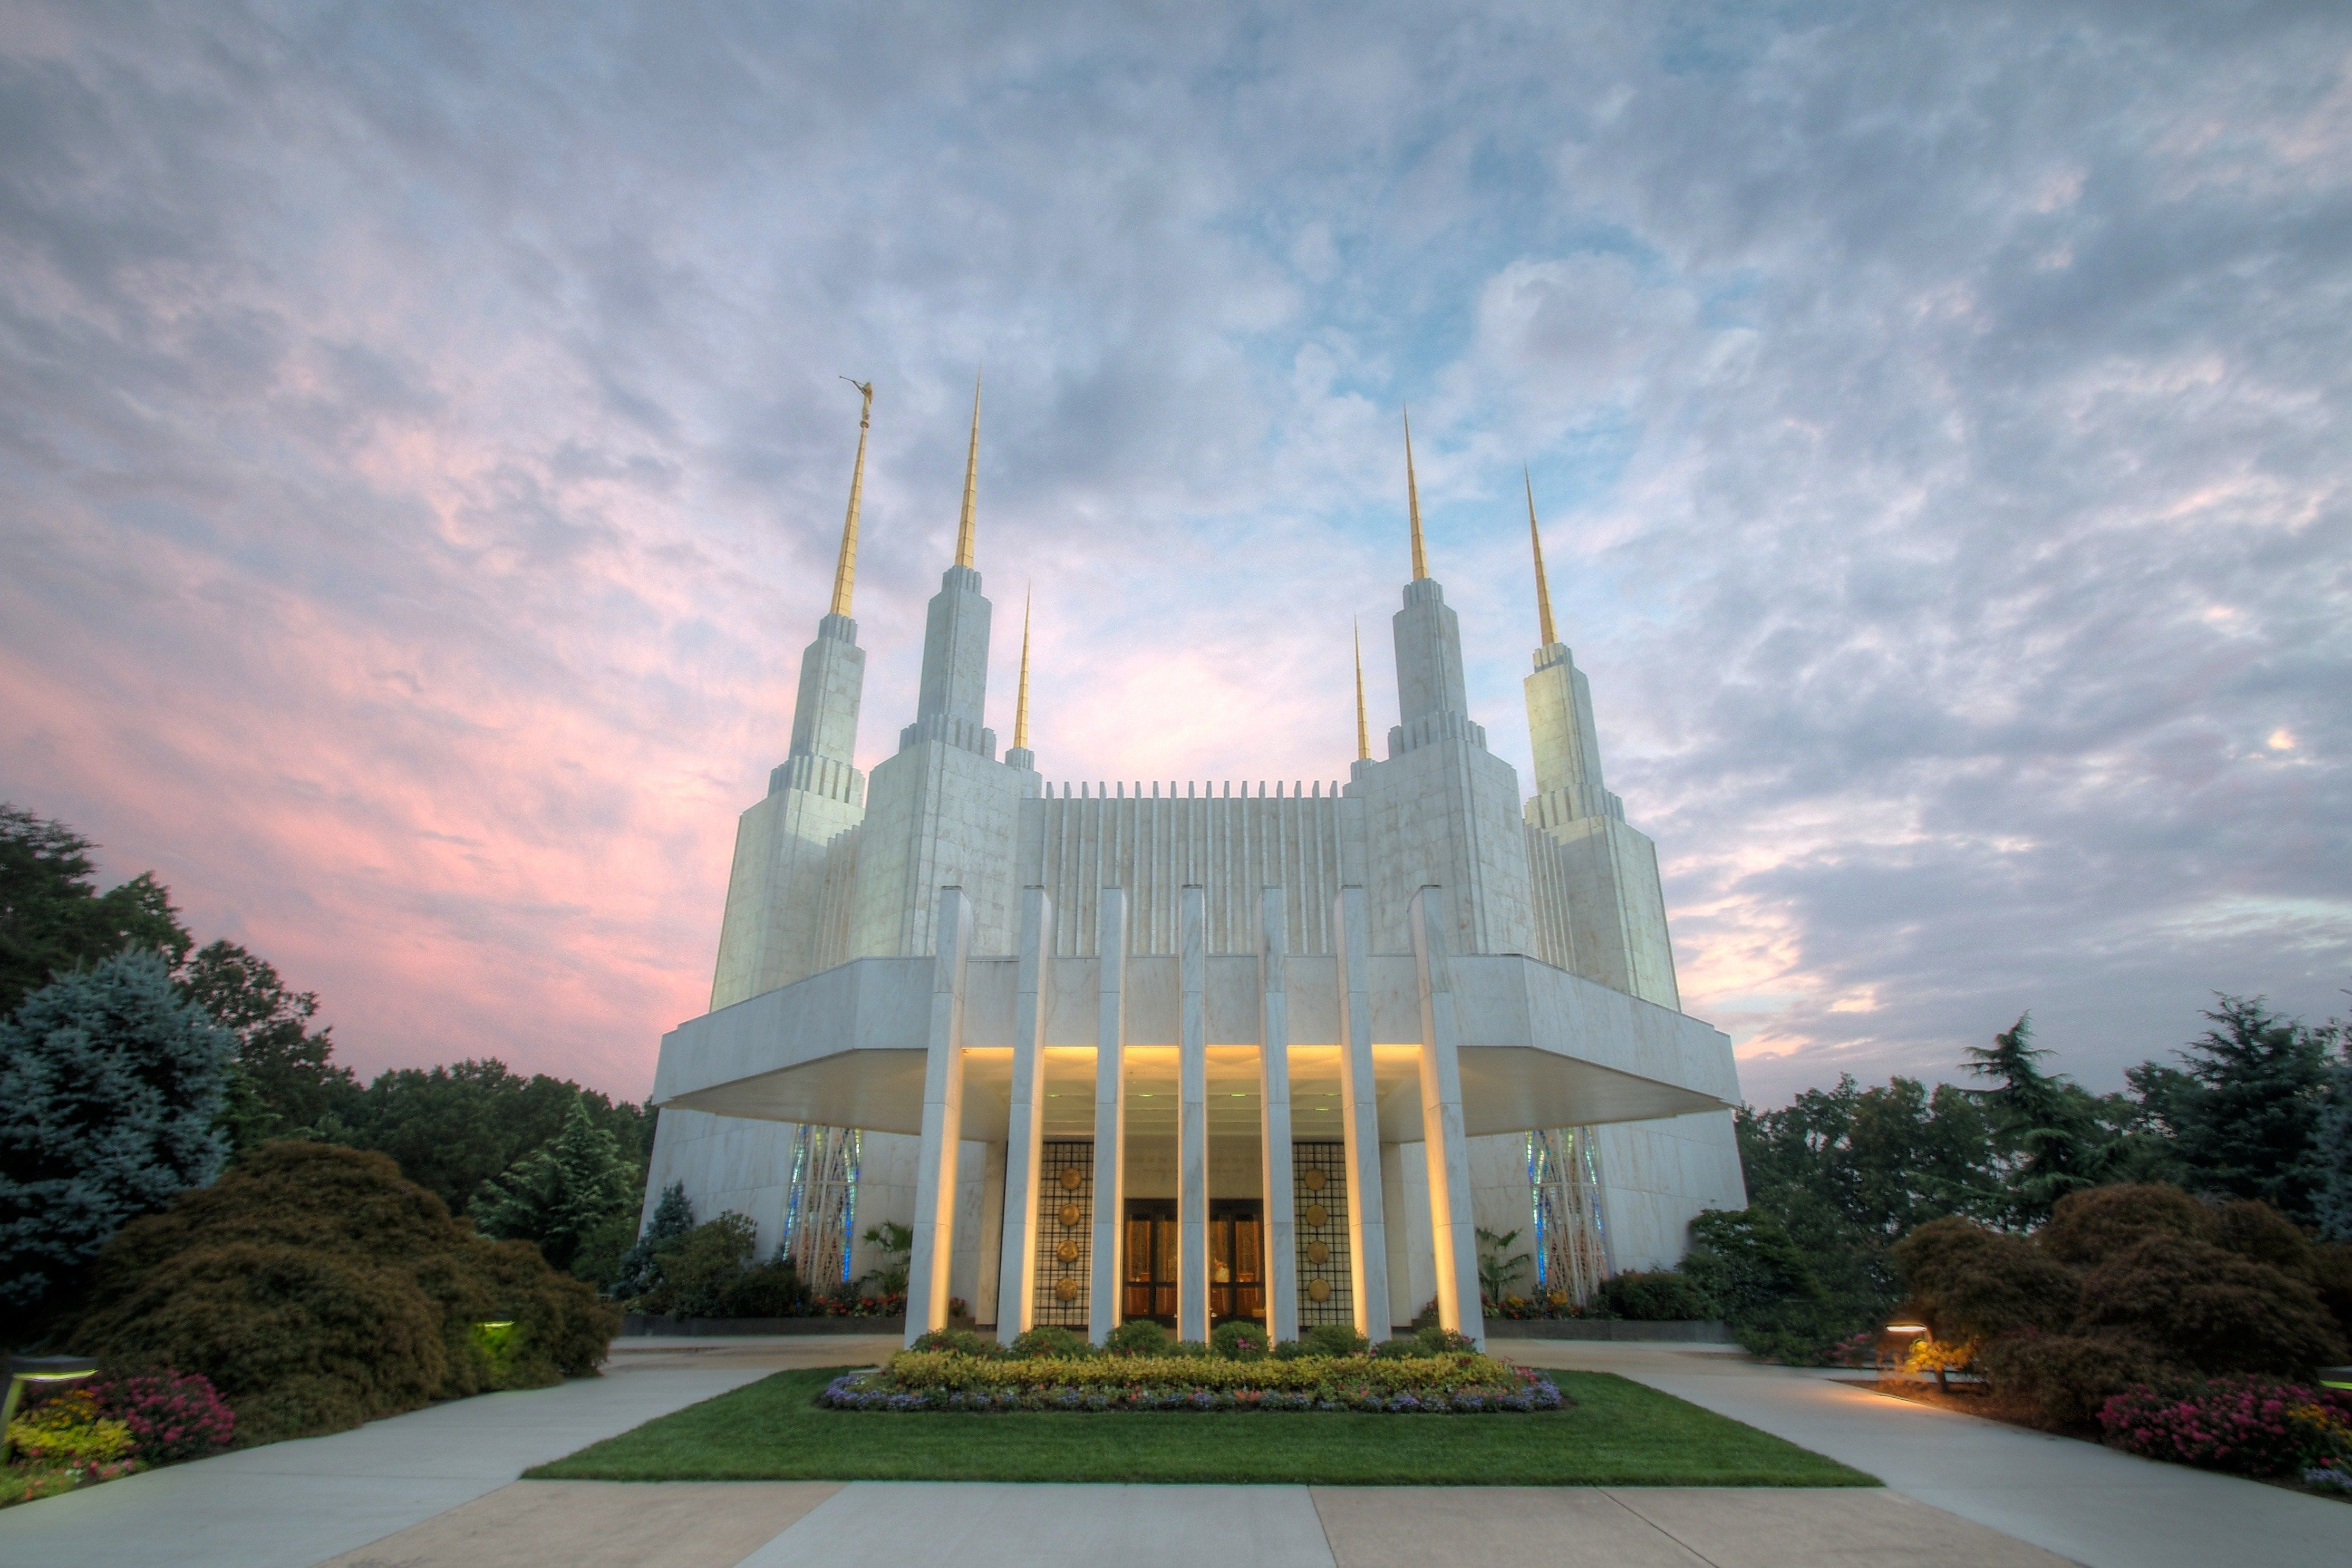 The entire Washington D.C. Temple, including the entrance and scenery.